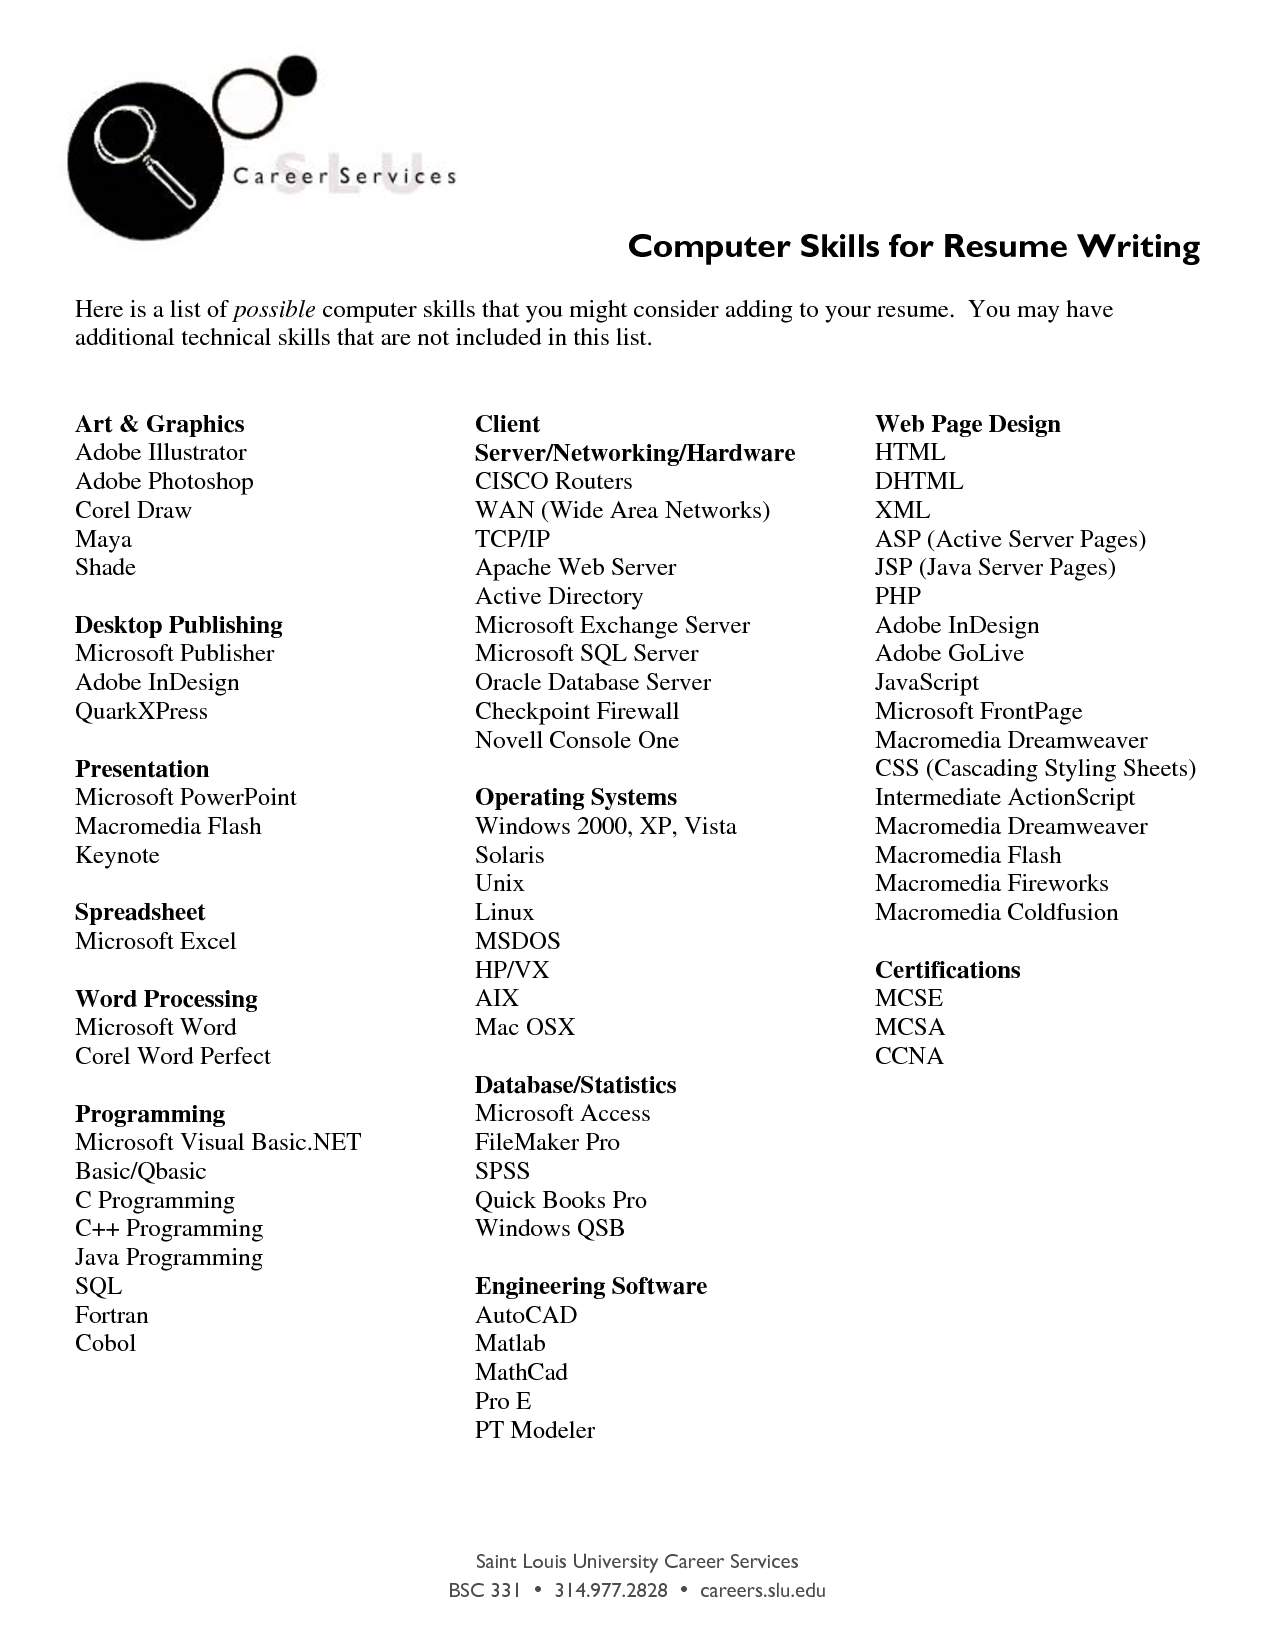 Pin By Maria Johnson On Work Resumes And Cover Letters Resume Skills List Resume Skills Resume Skills Section